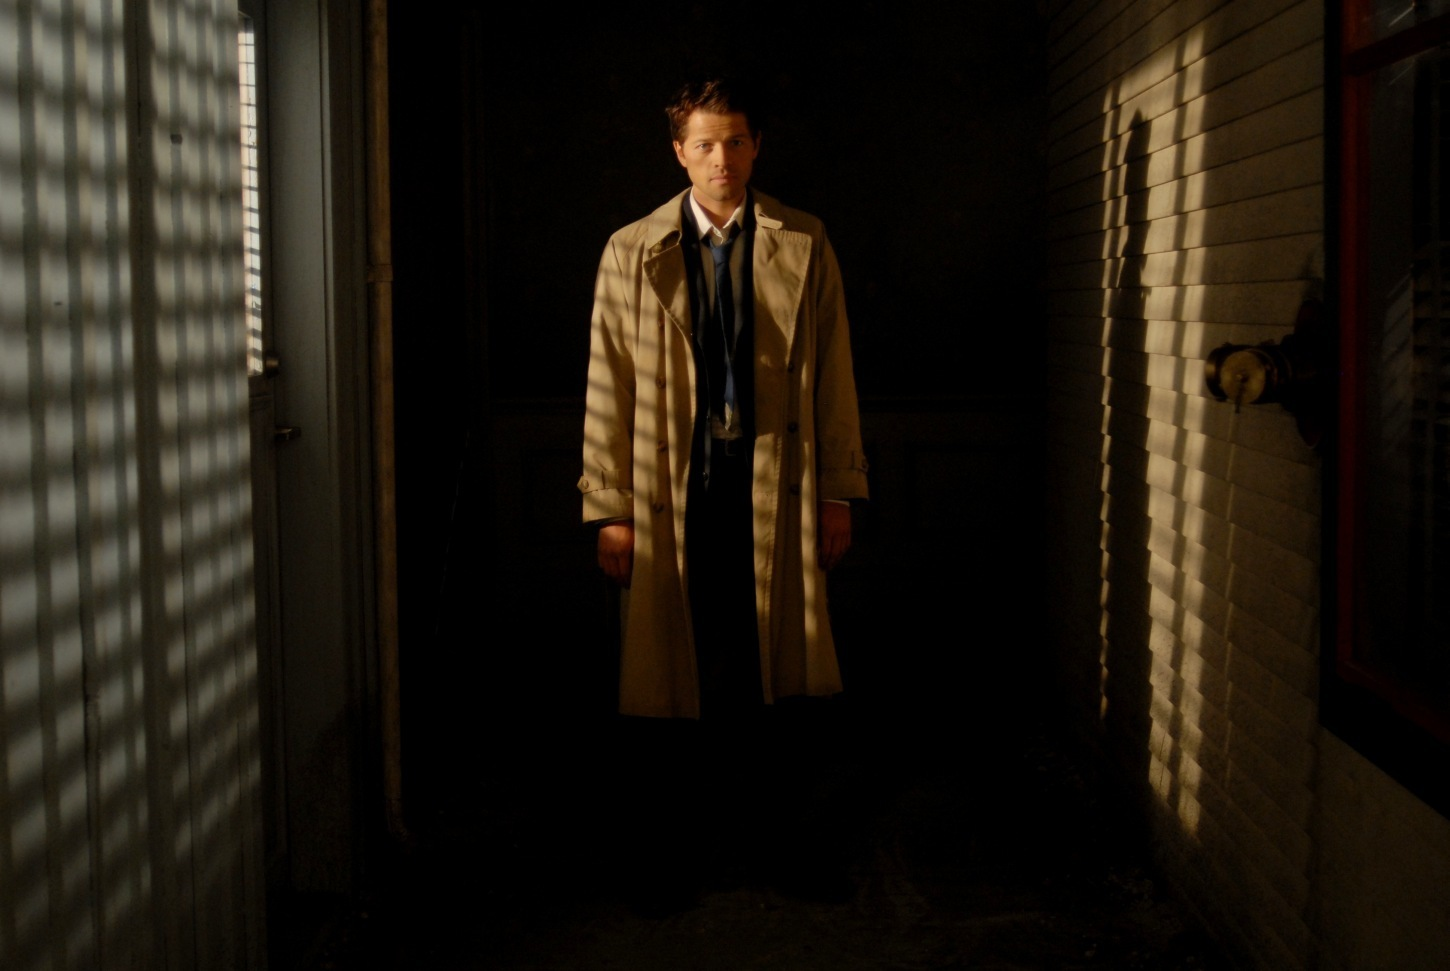 Angels Of Supernatural Images Promo Castiel 4x03 Hd Wallpaper And Voucher Rp 9300000 Background Photos